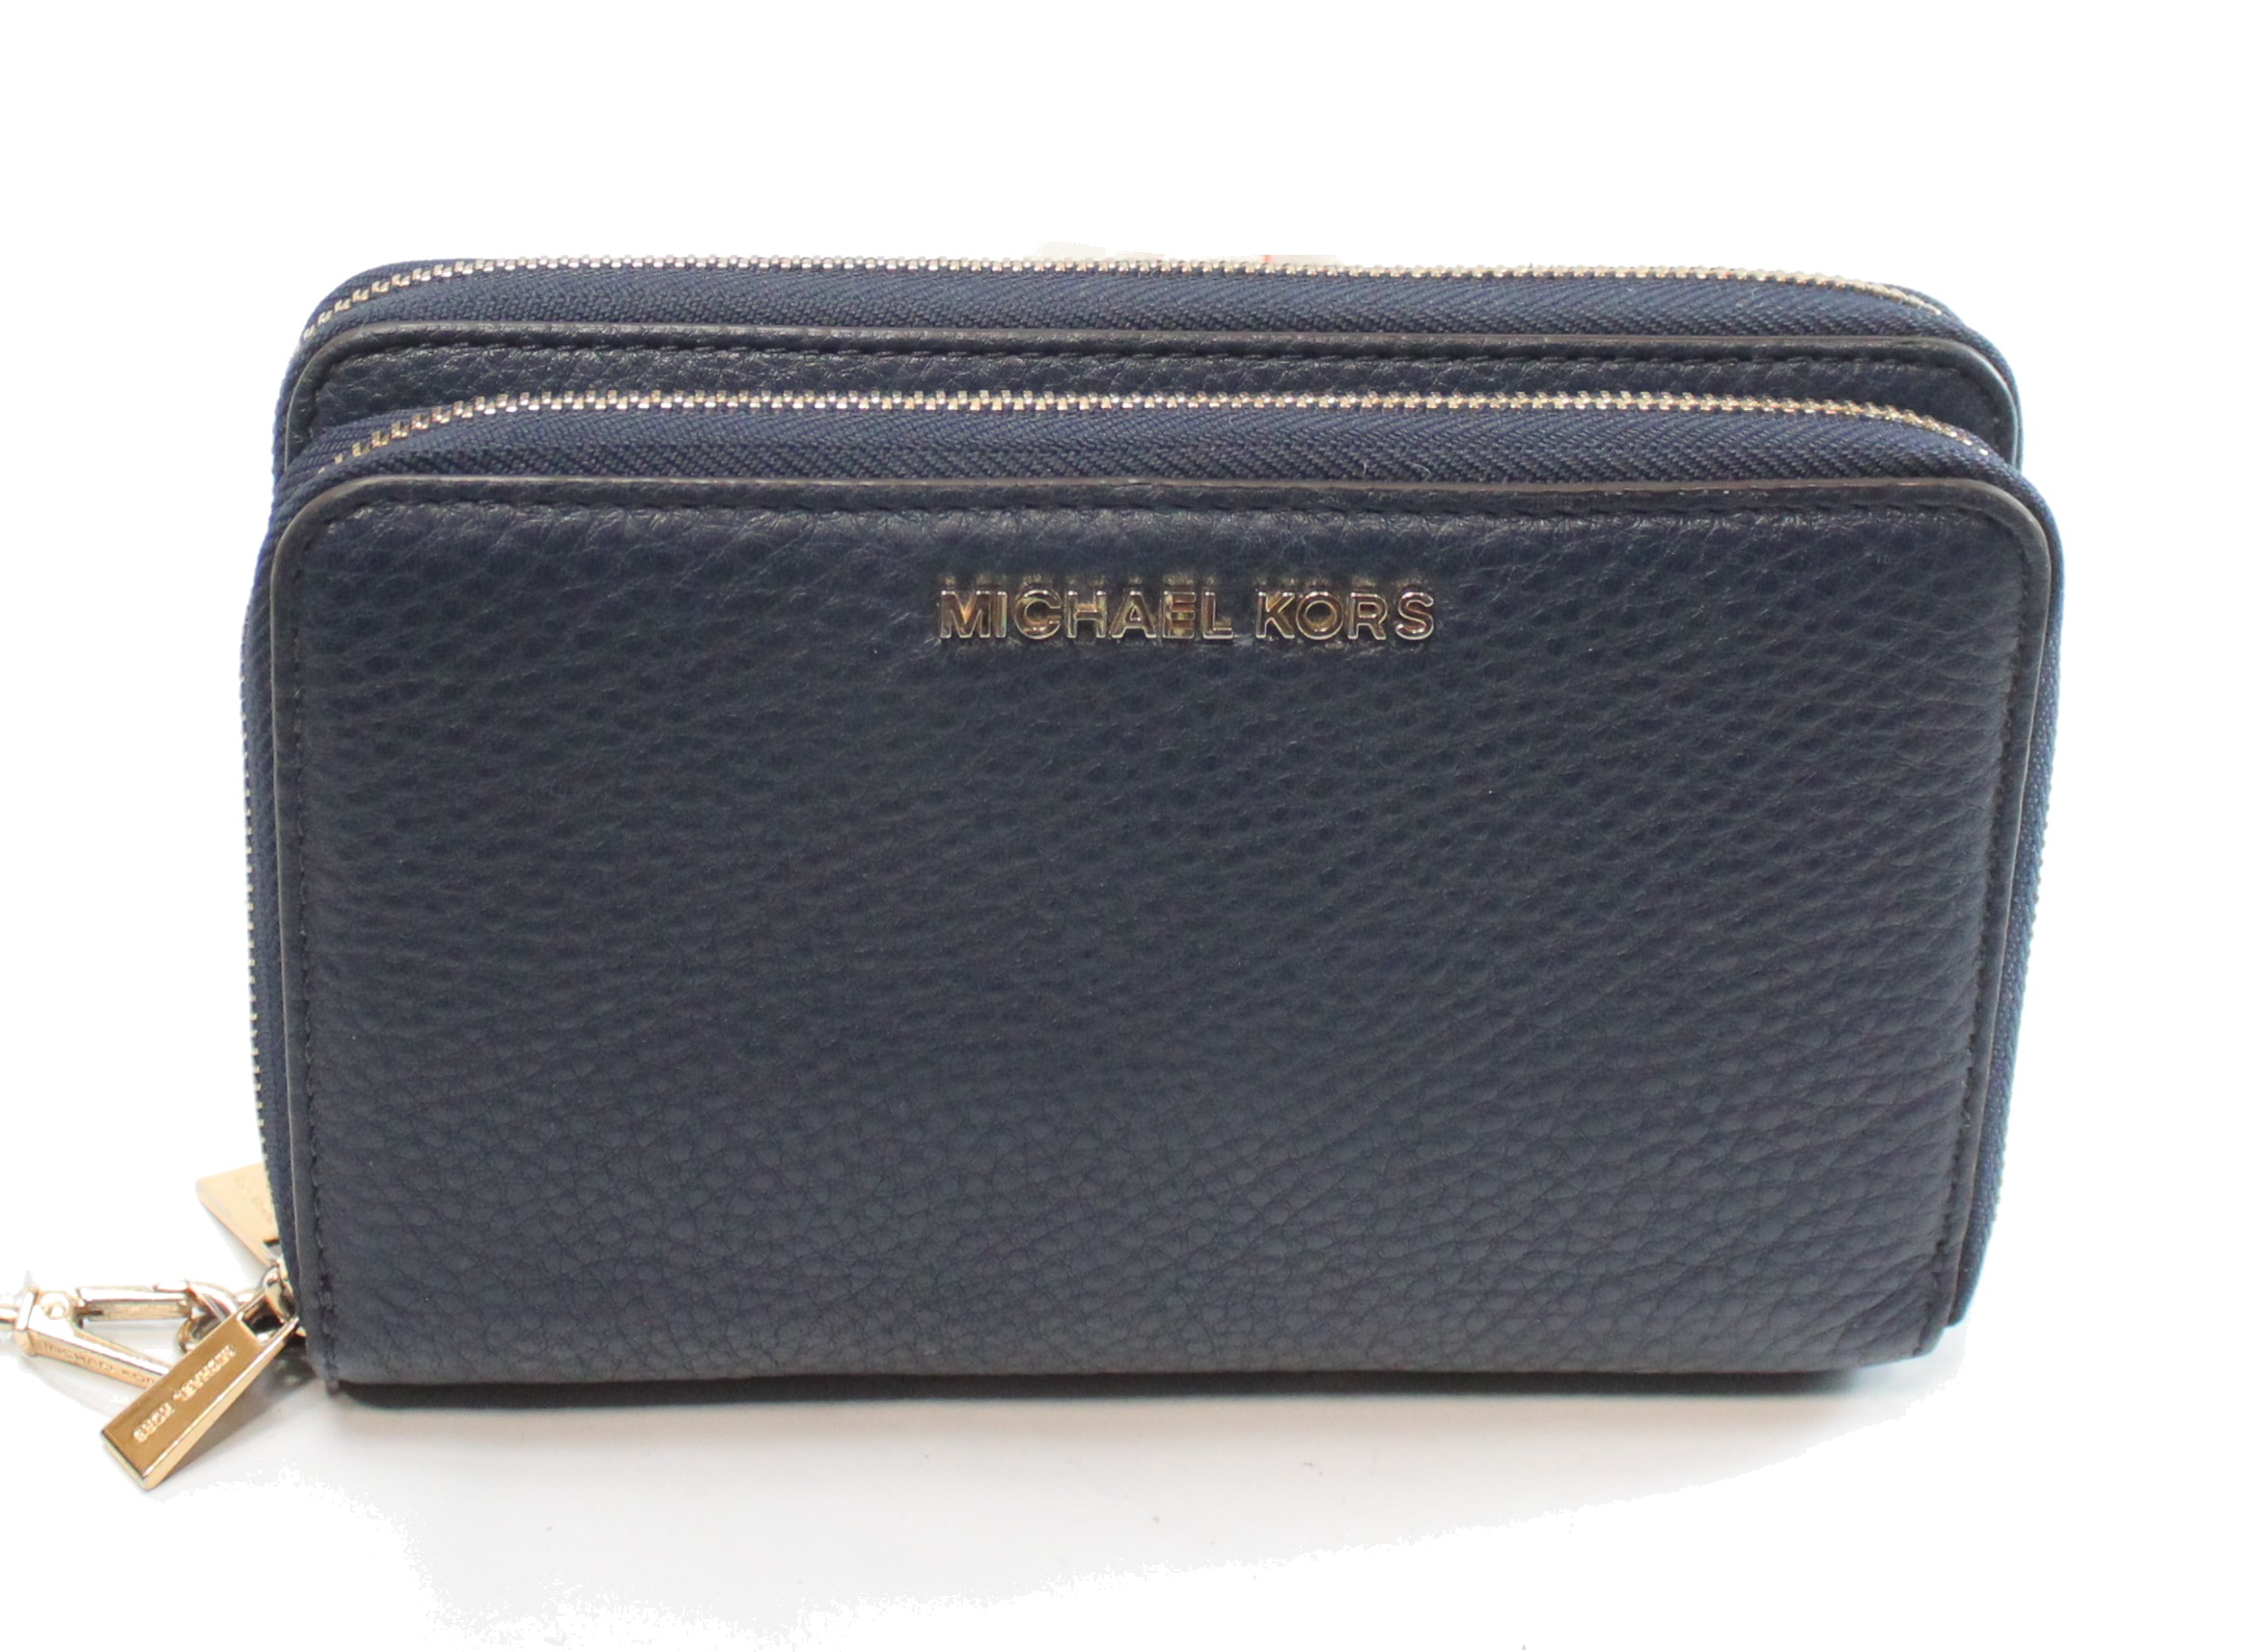 a14ade50562bca Michael Kors NEW Blue Pebble Leather Adele Double Zip Wallet Clutch $168-  #063